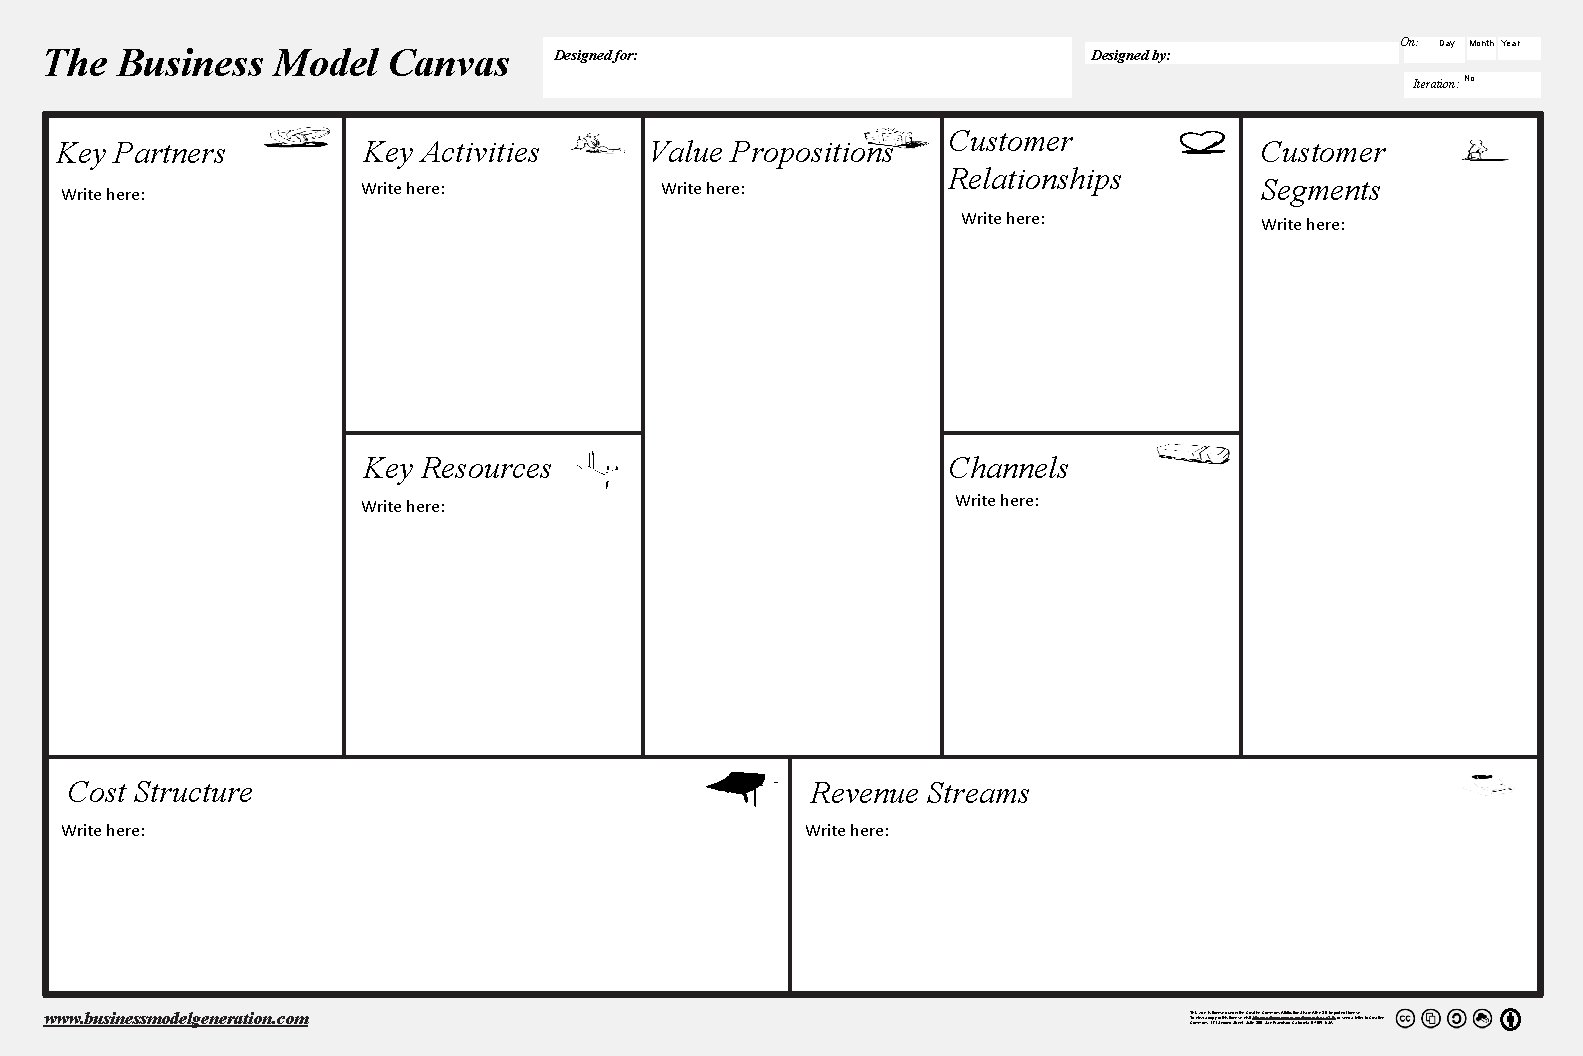 The Business Model Canvas Key Partners Key Activities Write here: Designed for: Value Propositions